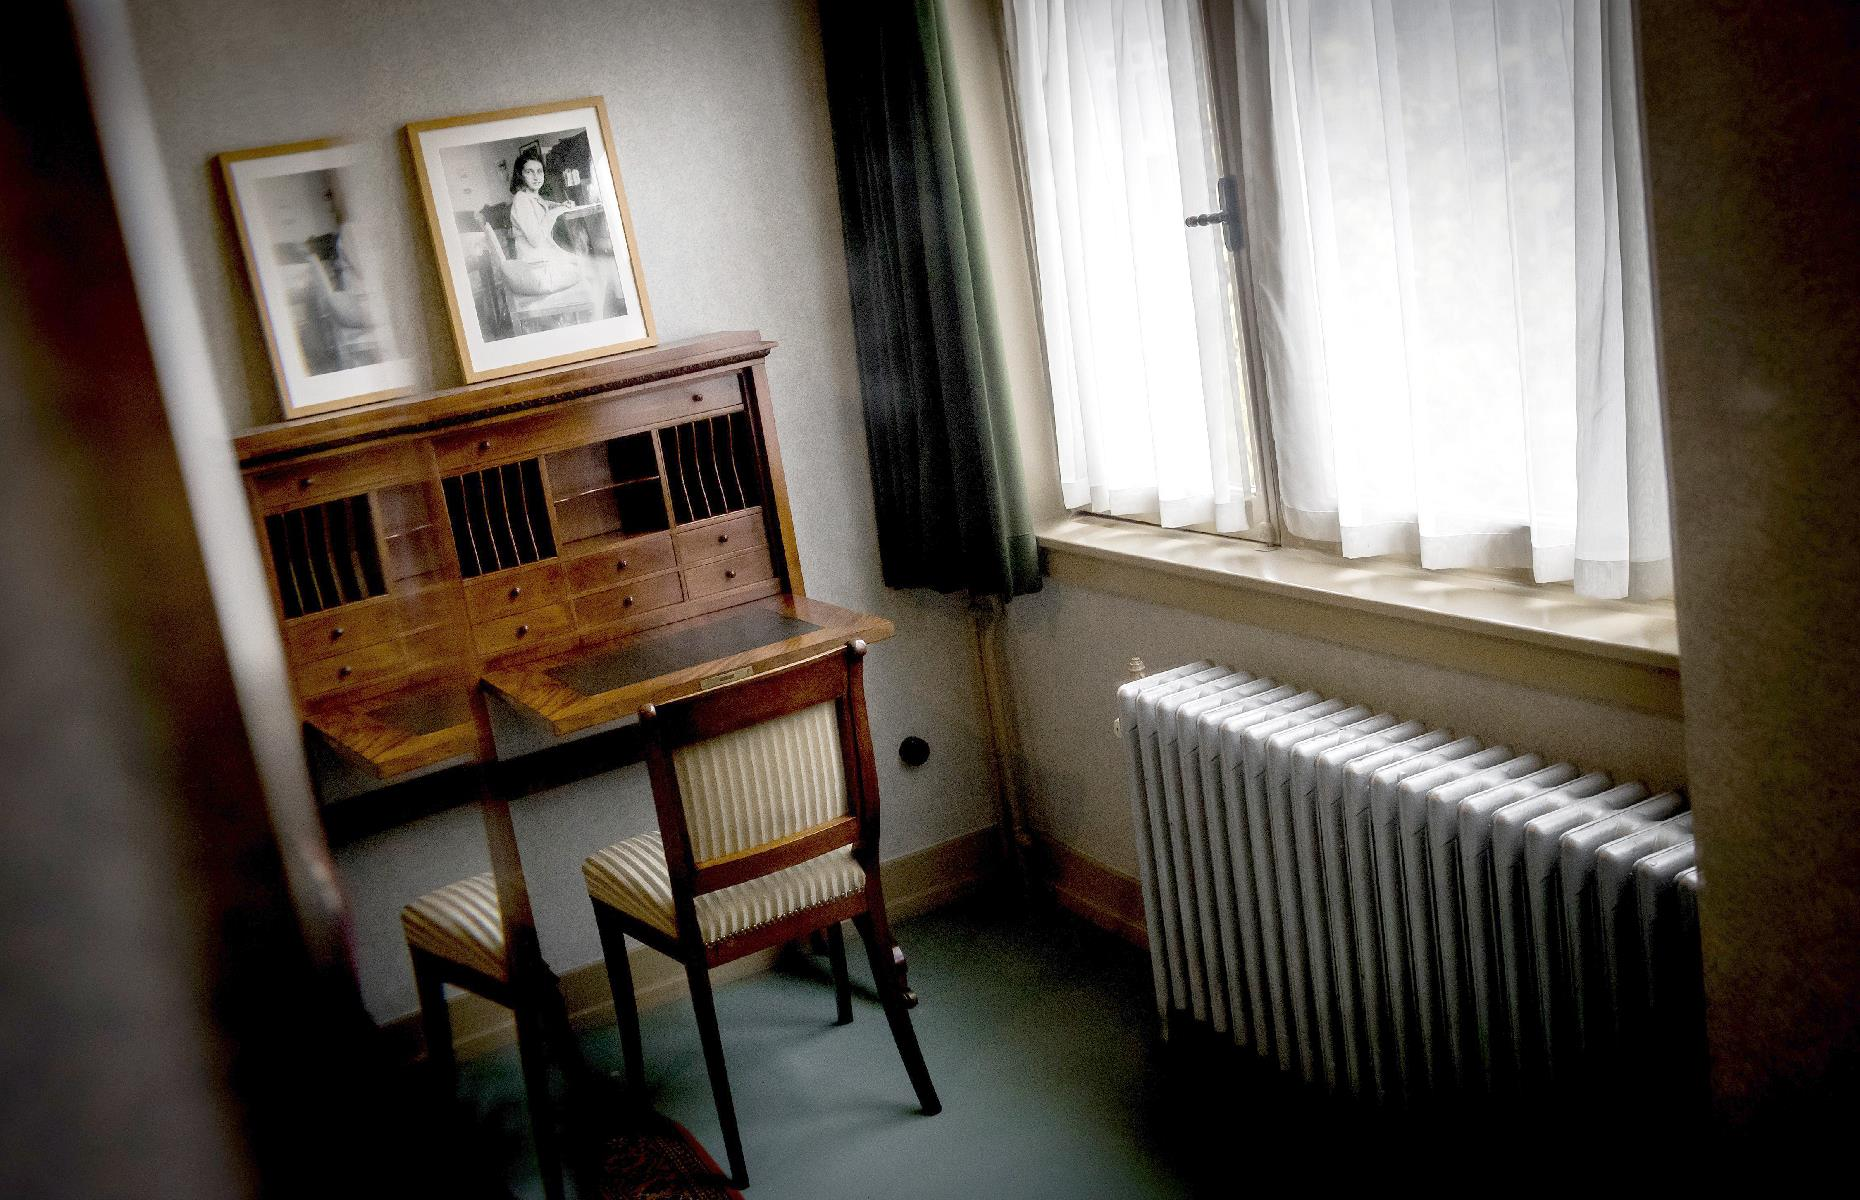 Slide 21 of 32: This unassuming canal-side house in Amsterdam was made famous by Anne Frank, a young Jewish girl who hid in a secret annex with her family during the Nazi regime and kept a diary of her experiences. Although Anne didn't survive the war, her diary was preserved and later published. This 2017 shot shows the room she occupied as preserved by the Anne Frank Foundation.